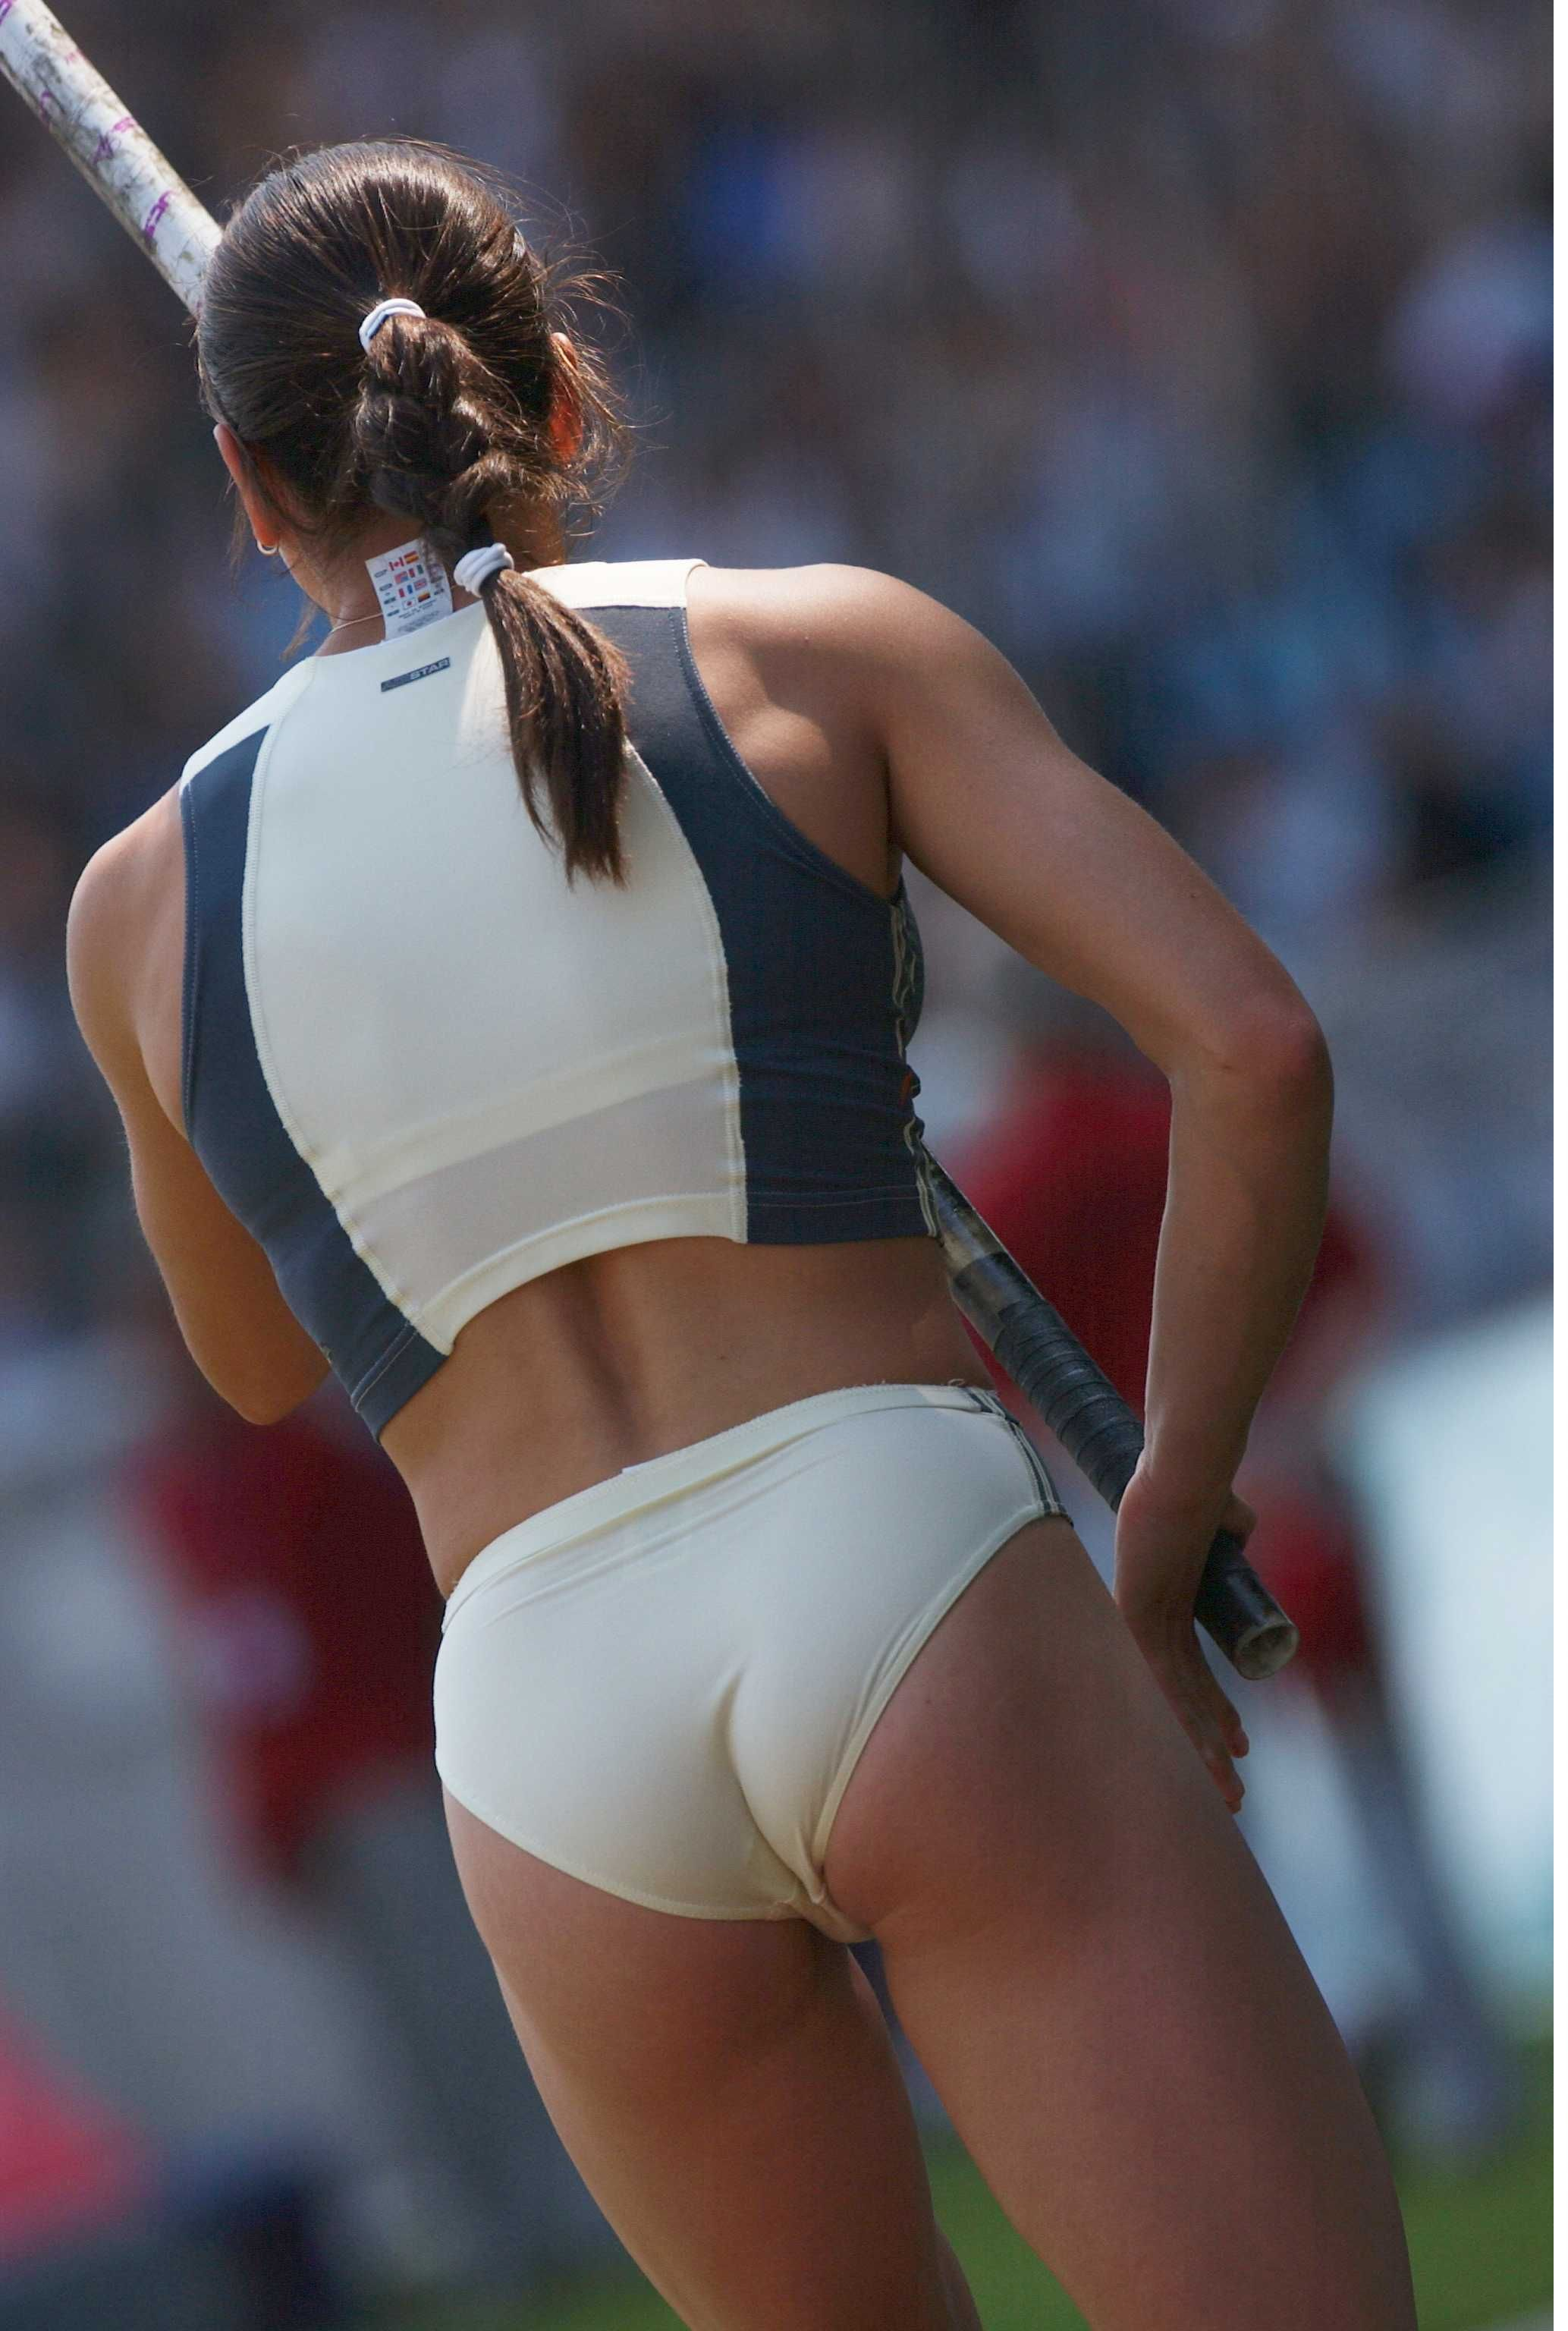 Sorry, that Track and field butt upskirt simply